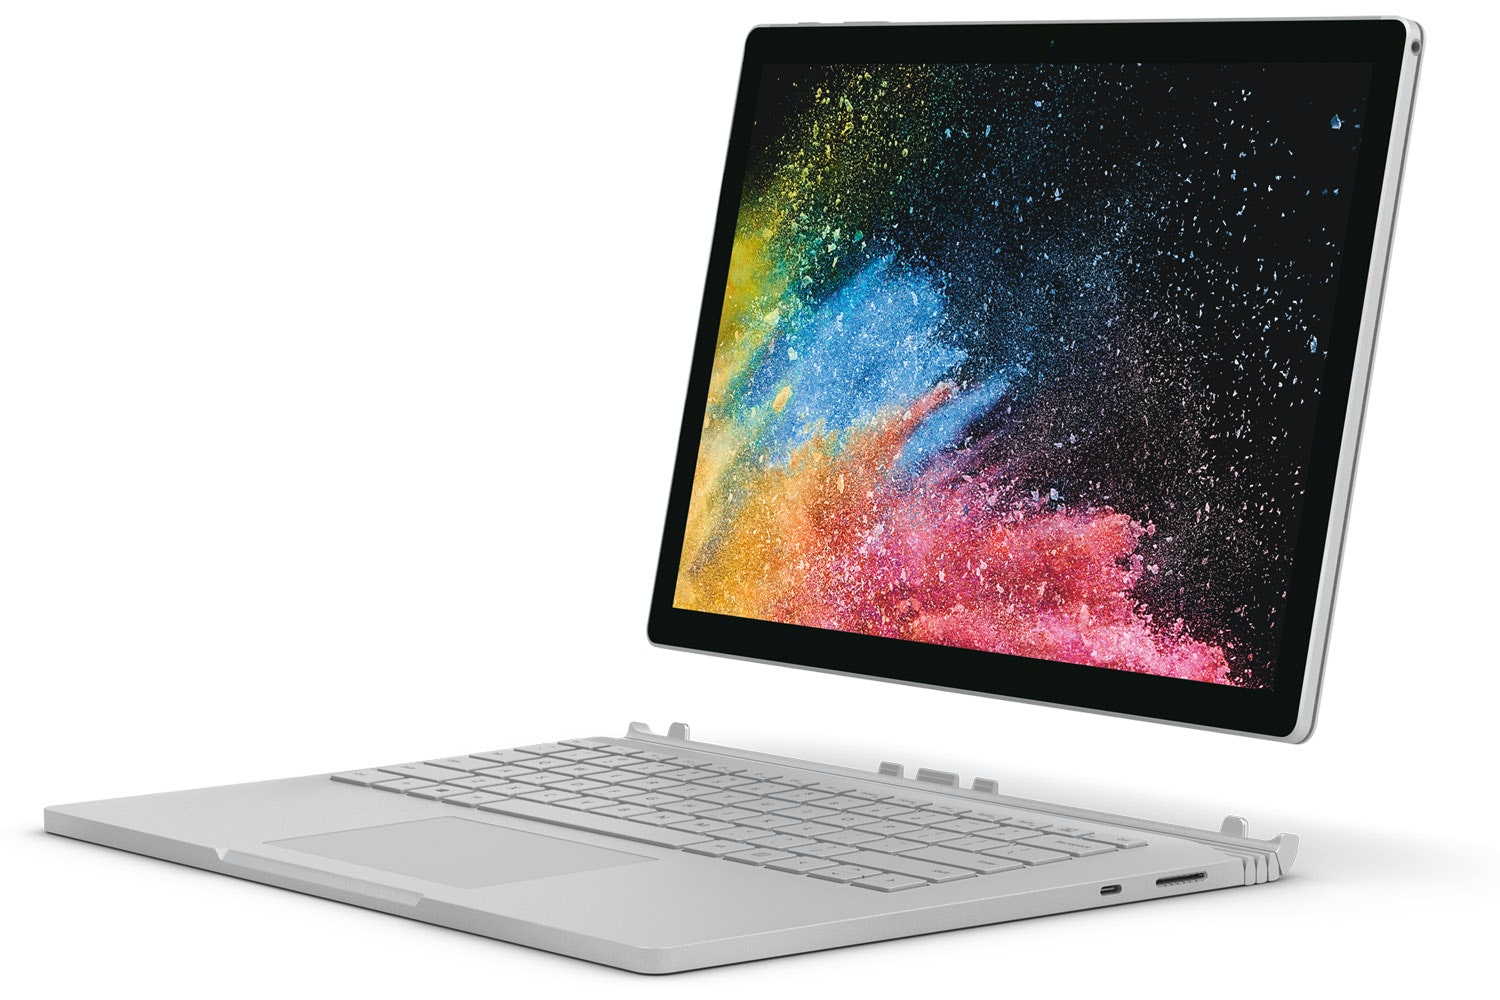 Microsoft Surface Book 2 13.5"